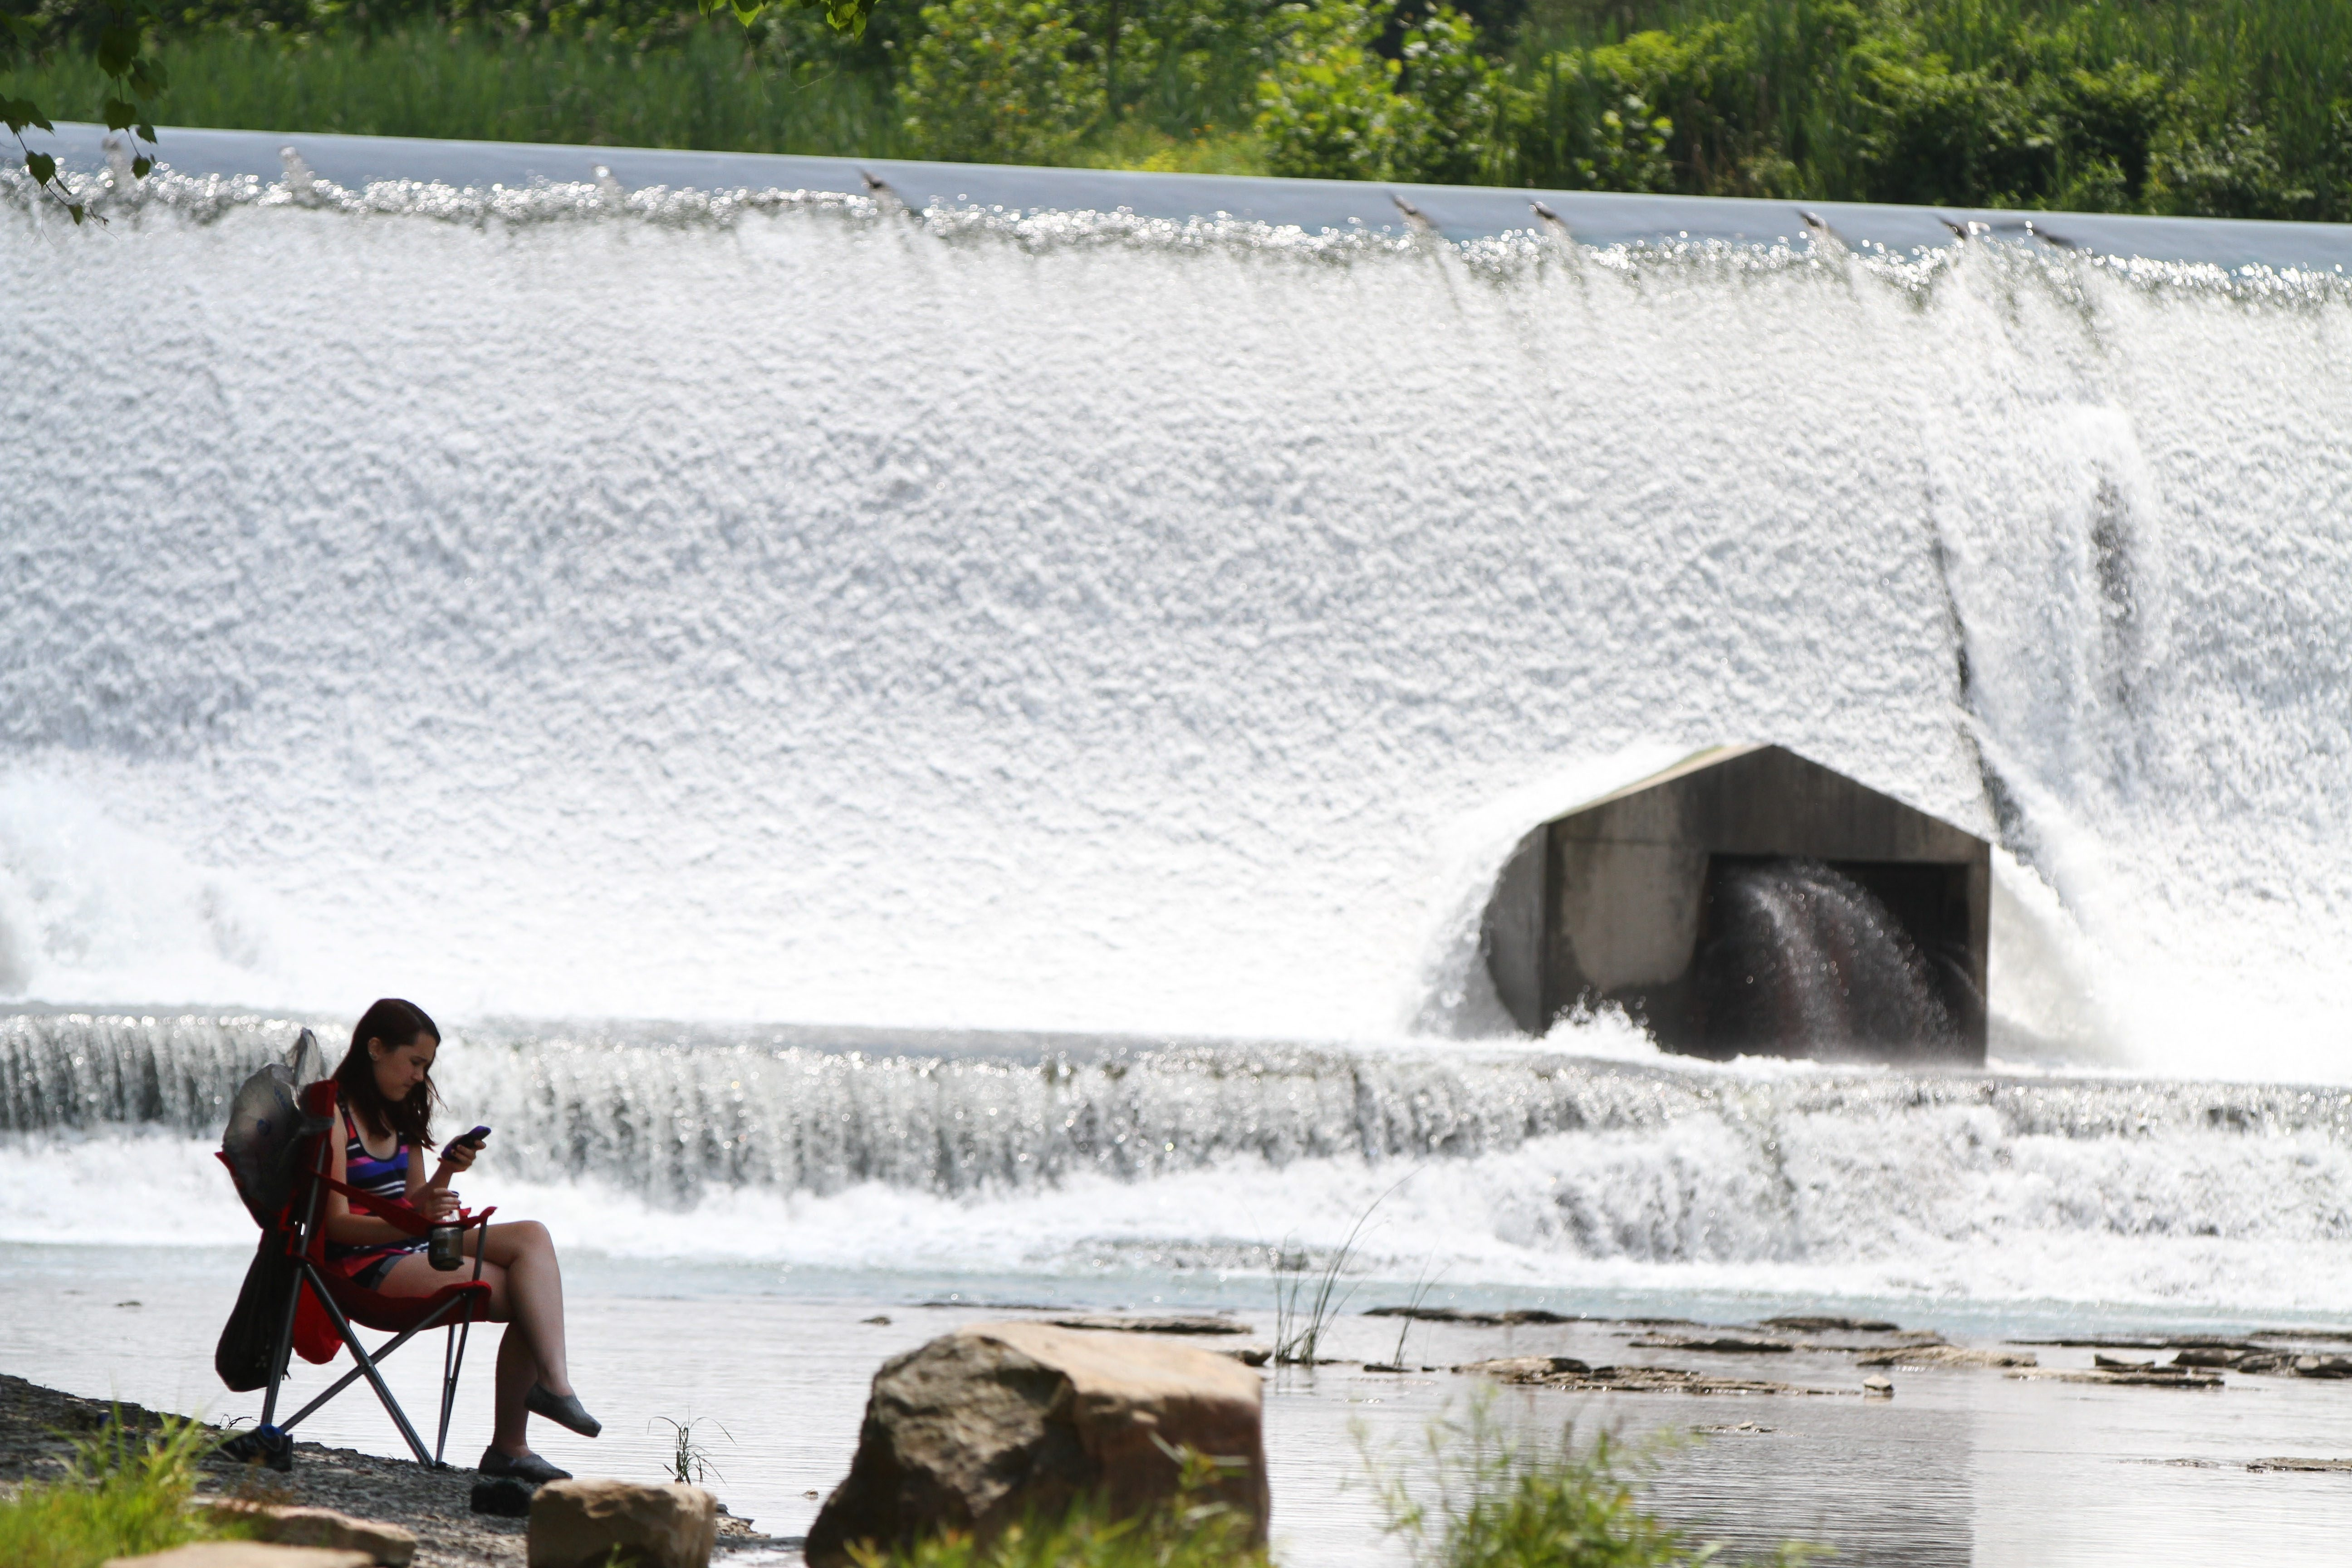 Caylee Barger enjoys a quiet day with her family at the Scoby Dam in Springville.